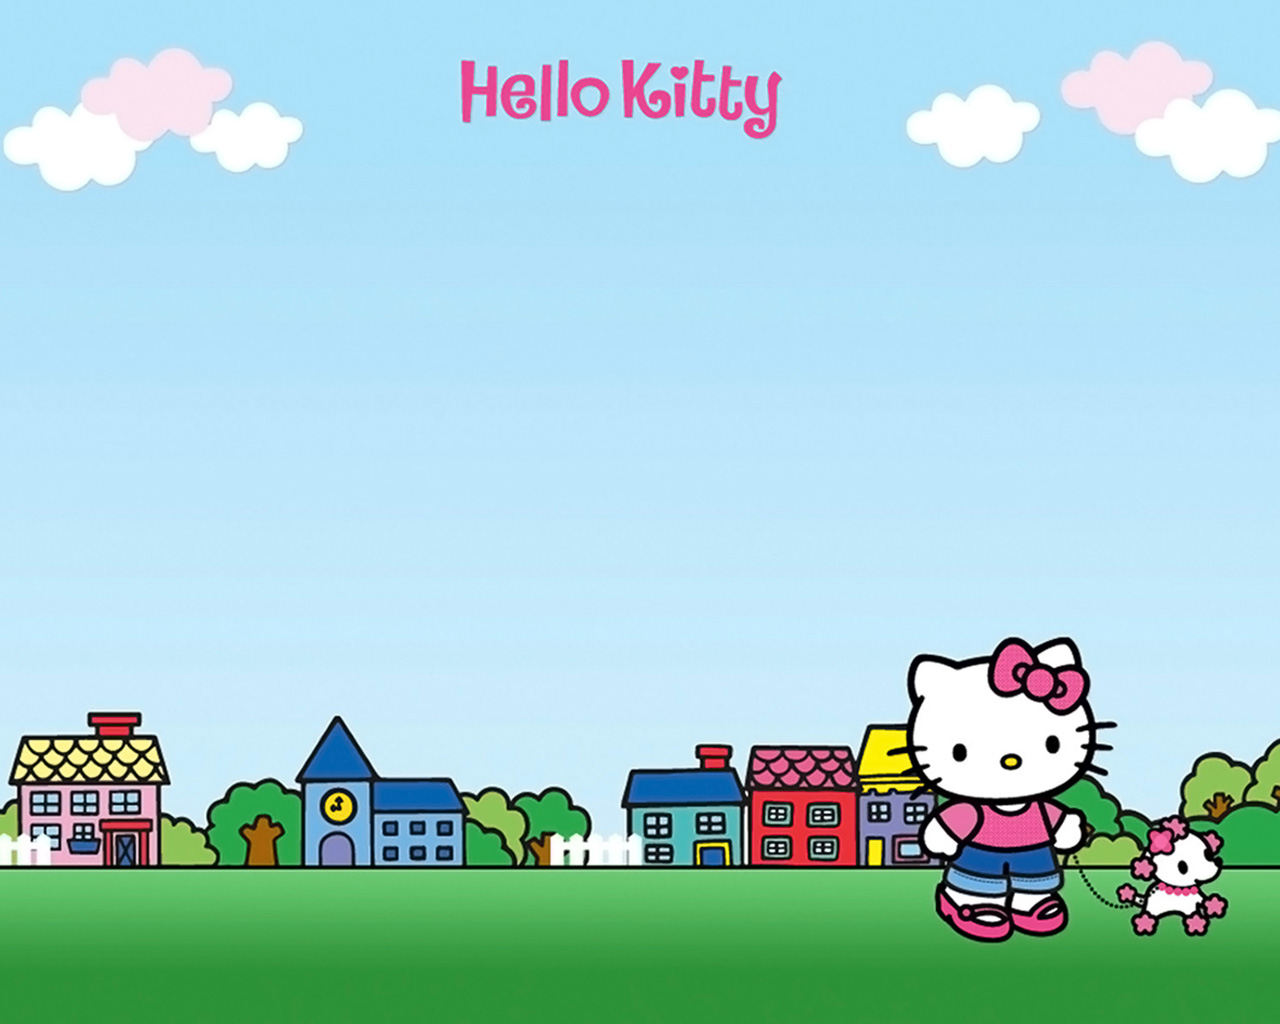 Hello Kitty Walking Dog 1280 1024 Digital Citizen